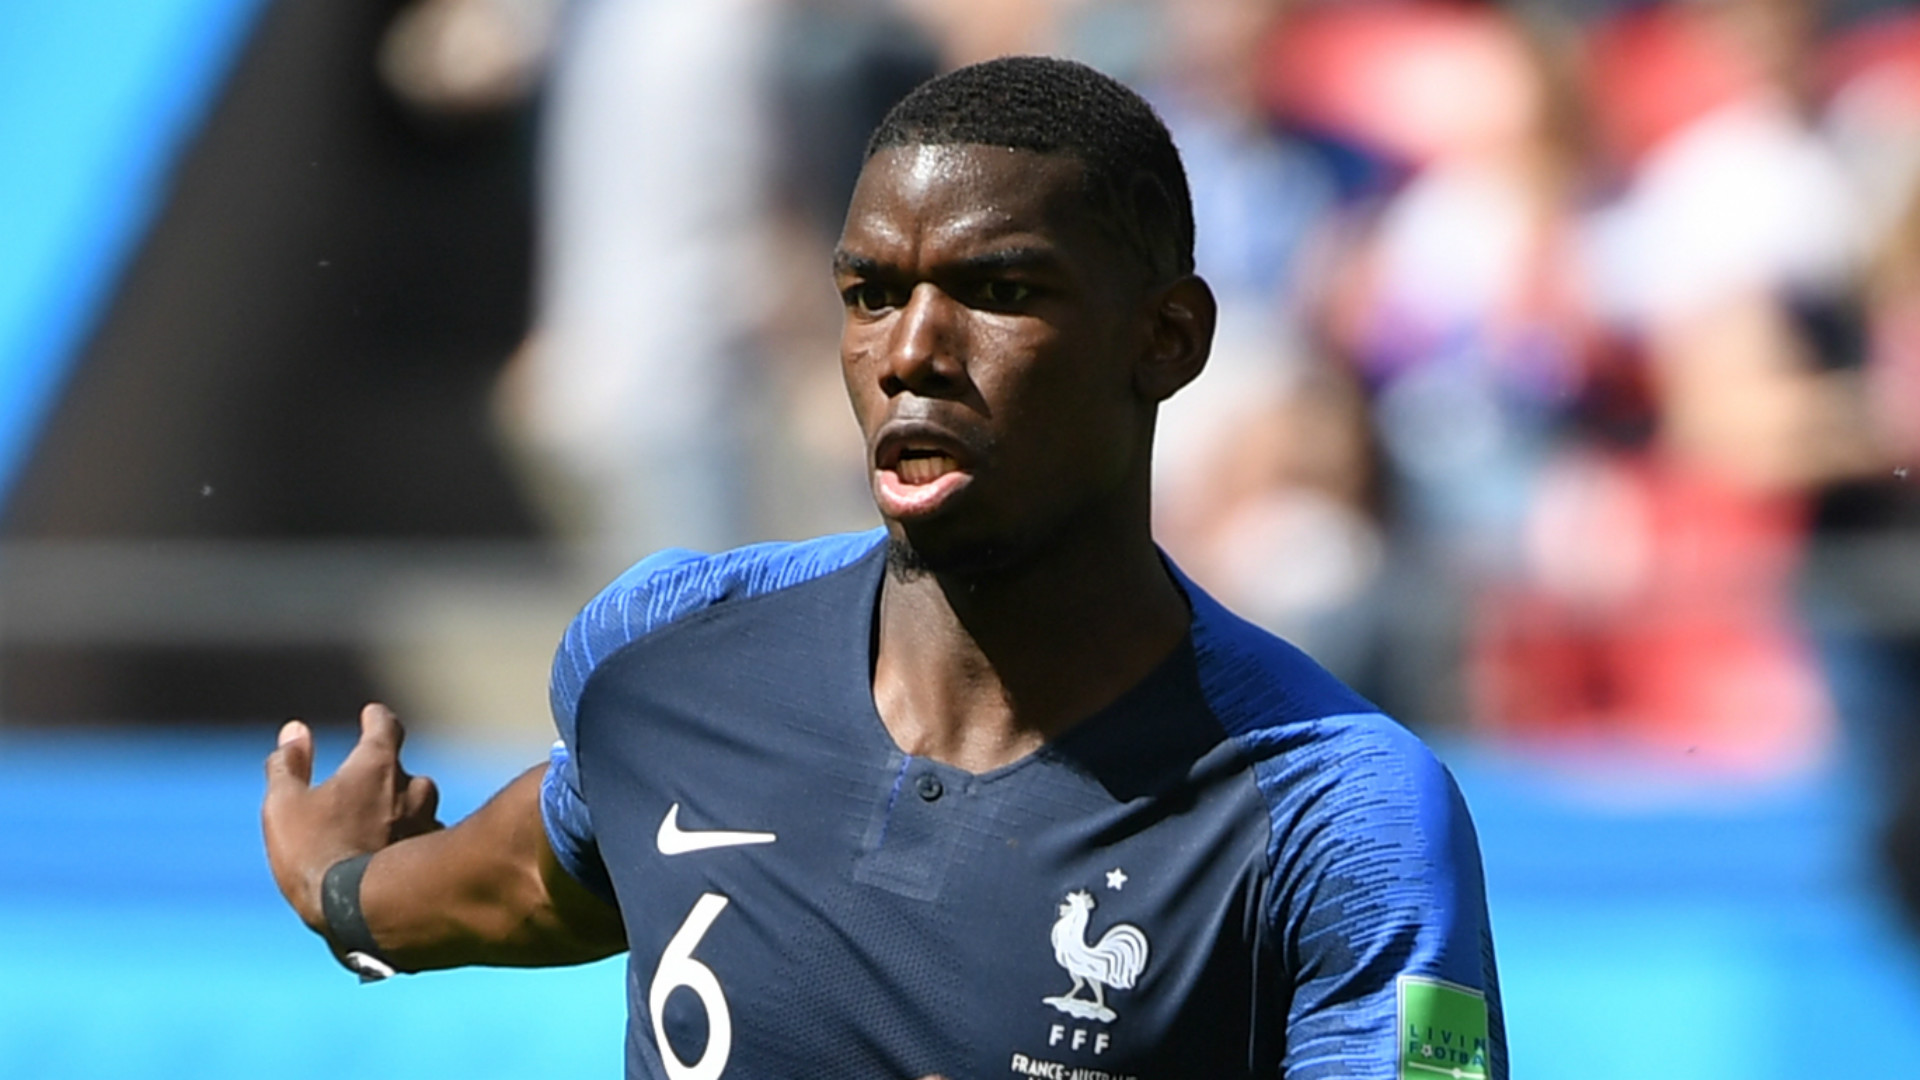 Pogba Haircut Jibe And France Criticism Played Down By Denmark Boss